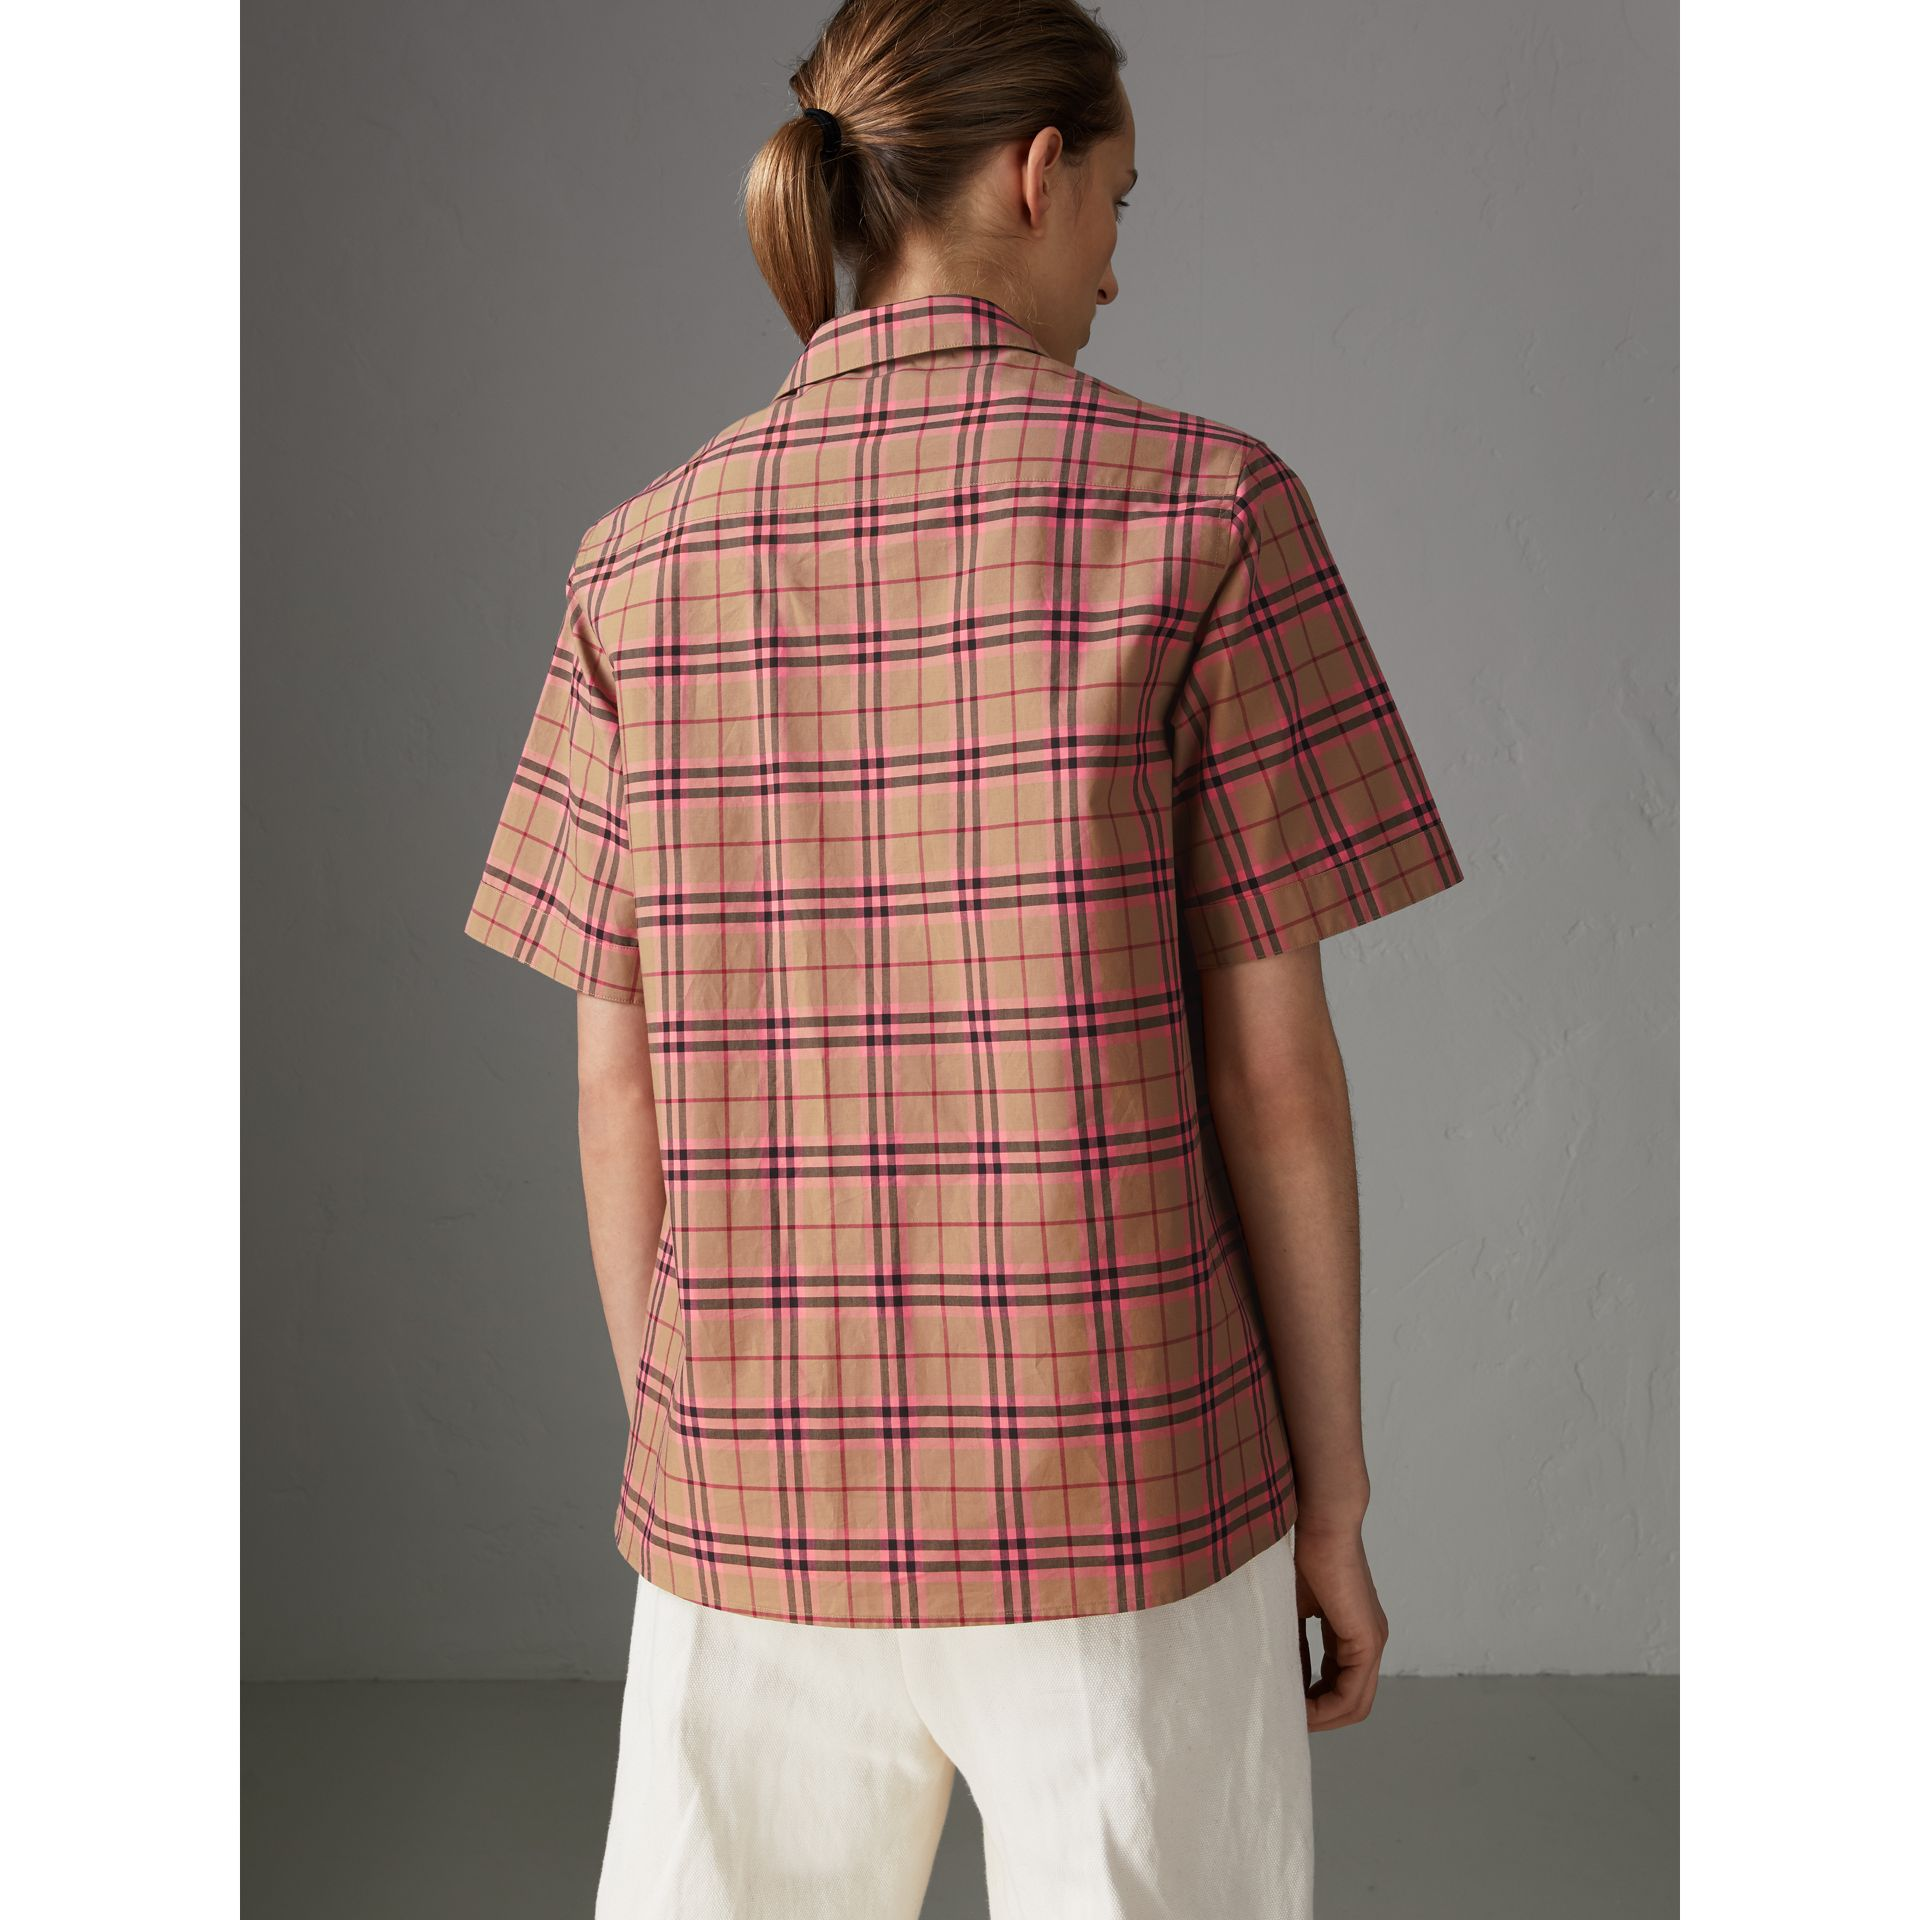 Check Cotton Short-sleeved Shirt in Pomegranate Pink - Women | Burberry Singapore - gallery image 2